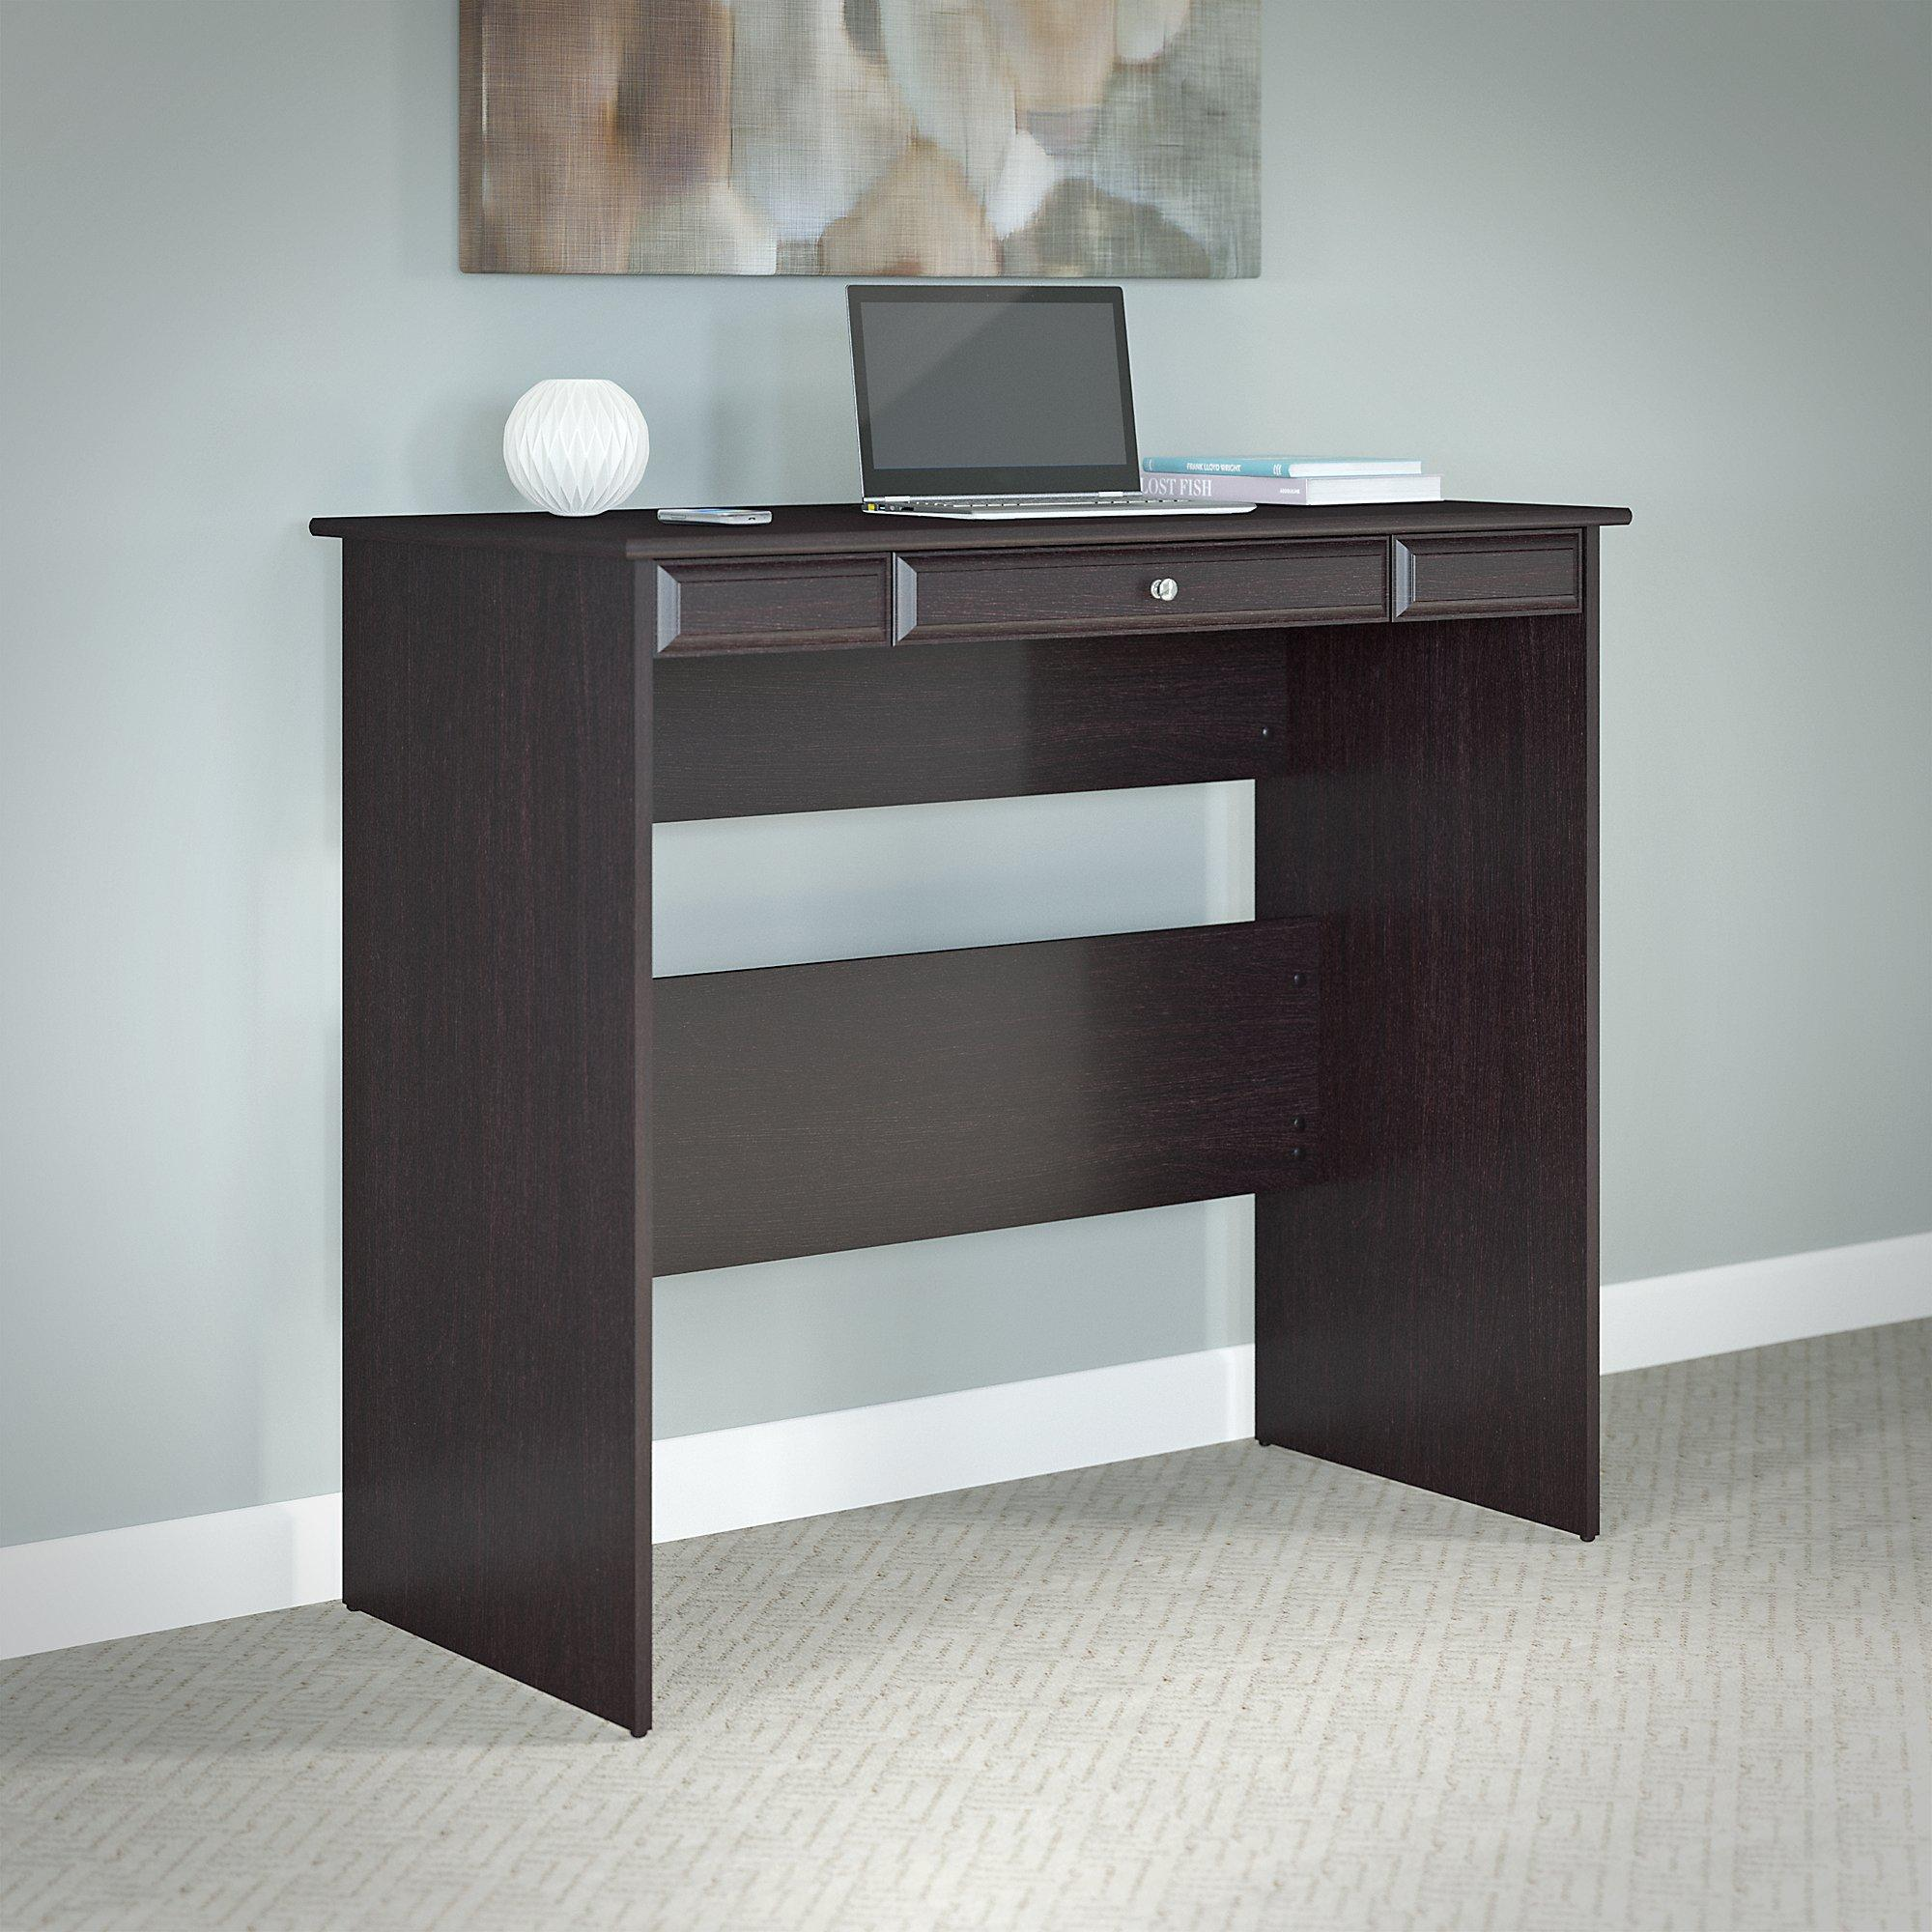 Office Furniture Collection: Amazon.com: Cabot Standing Desk: Kitchen & Dining